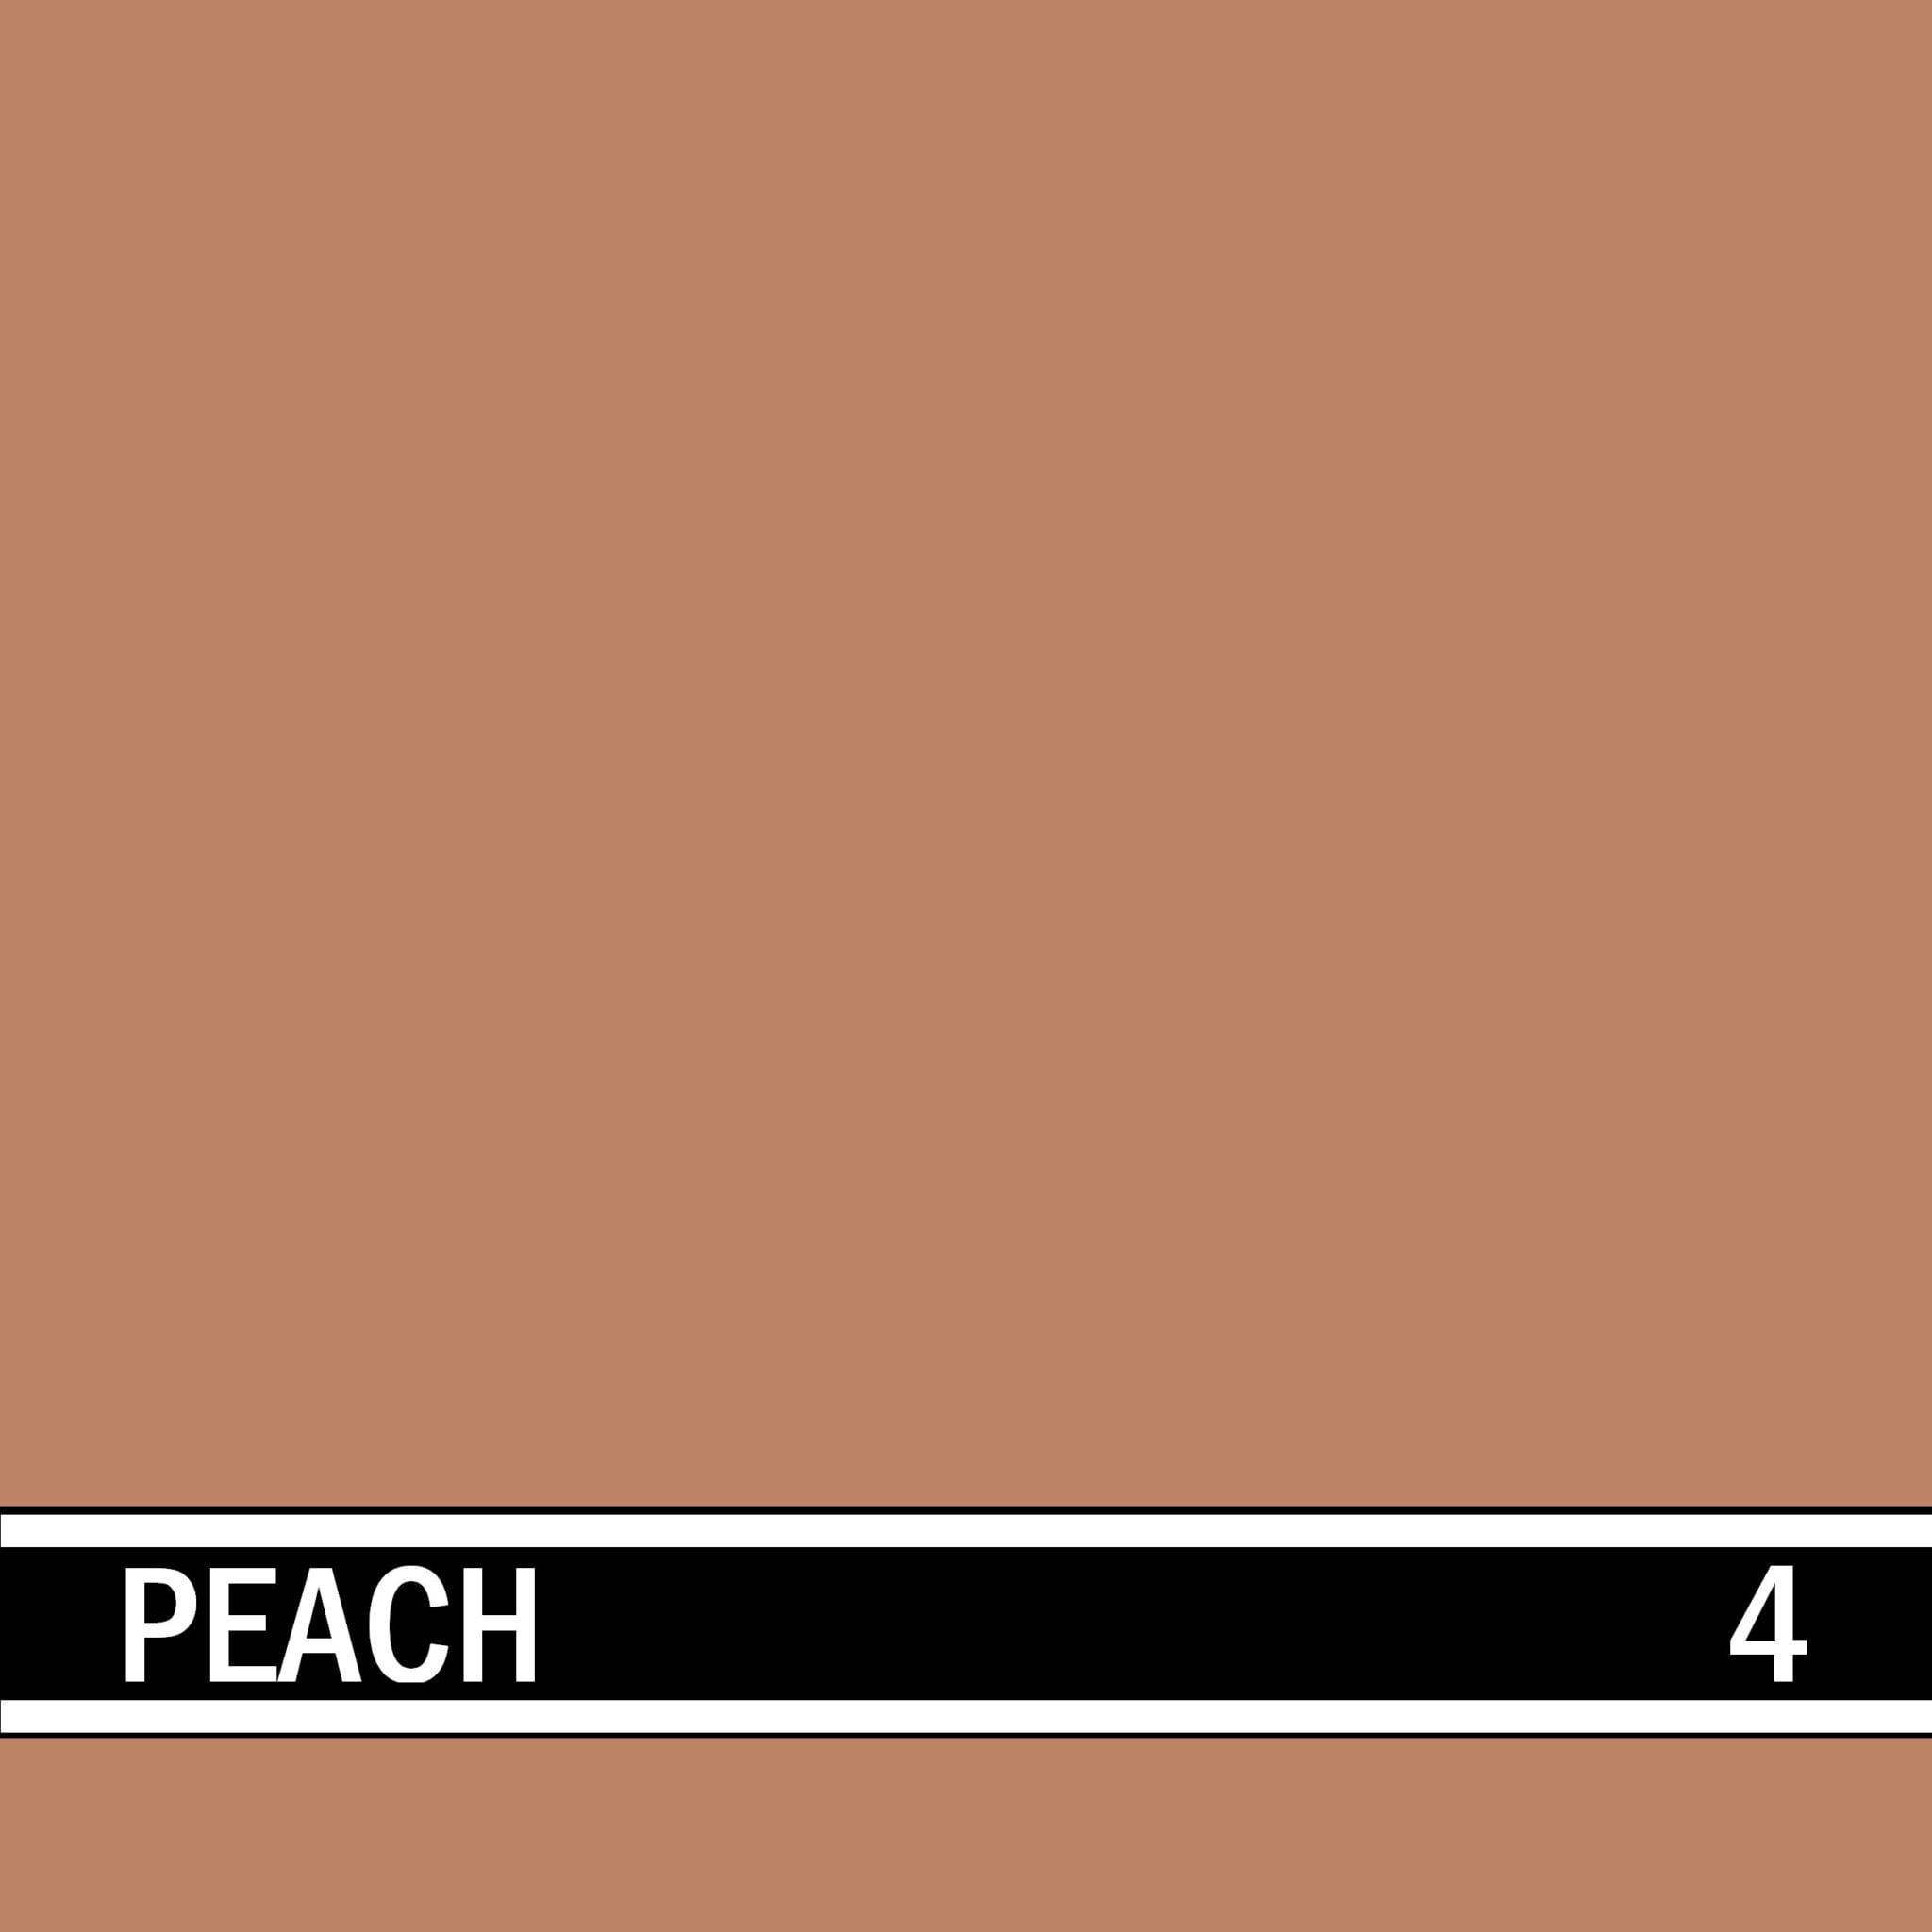 Peach integral concrete color for stamped concrete and decorative colored concrete